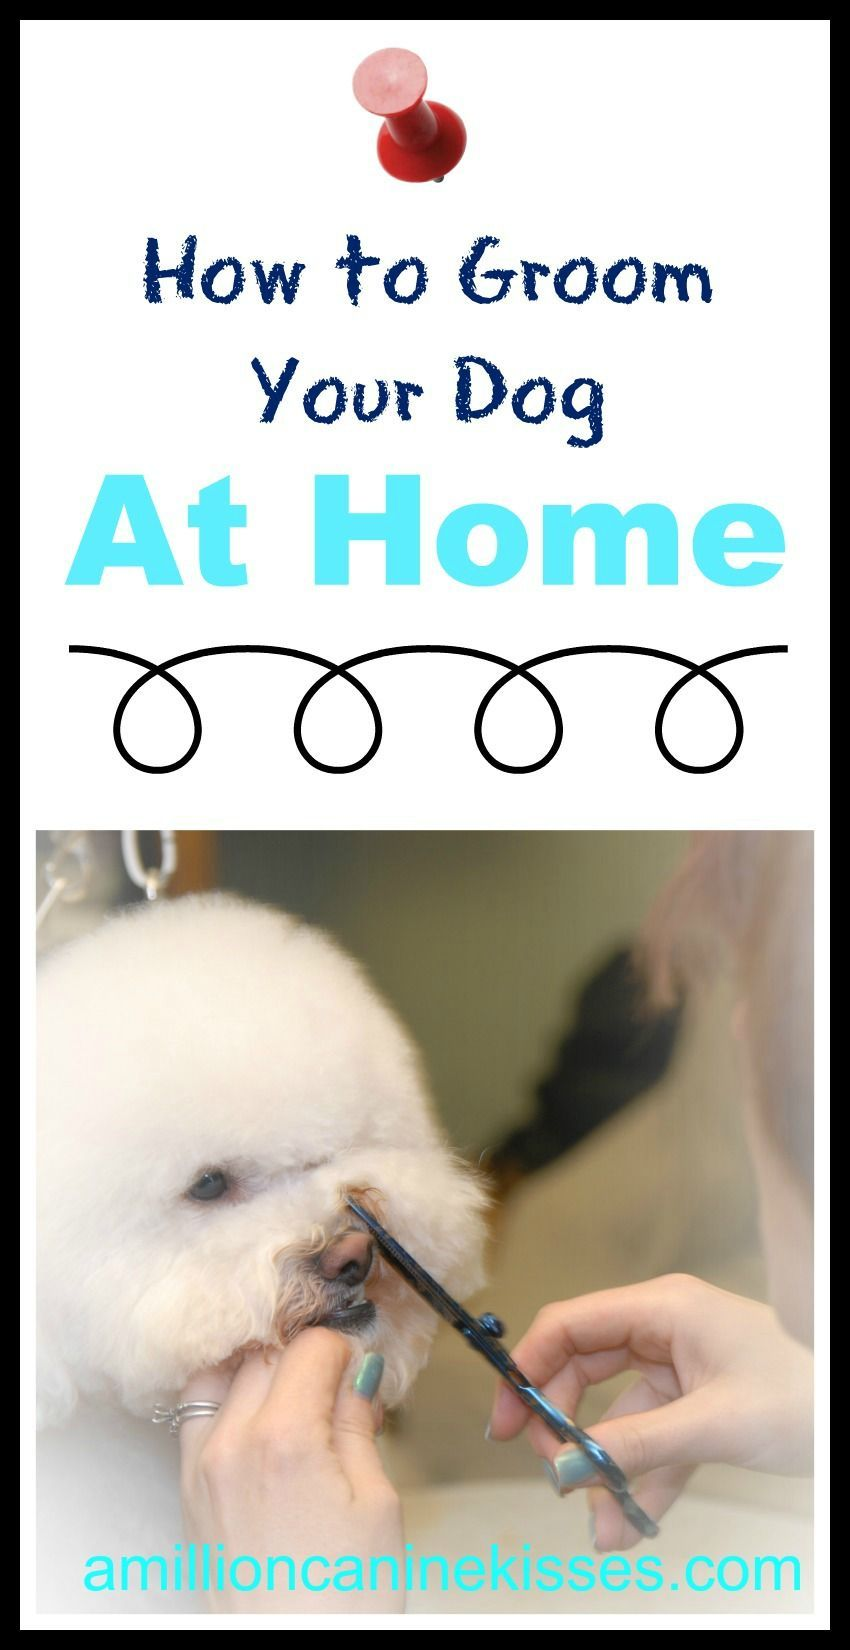 How to Groom Your Dog at Home Dog grooming business, Dog